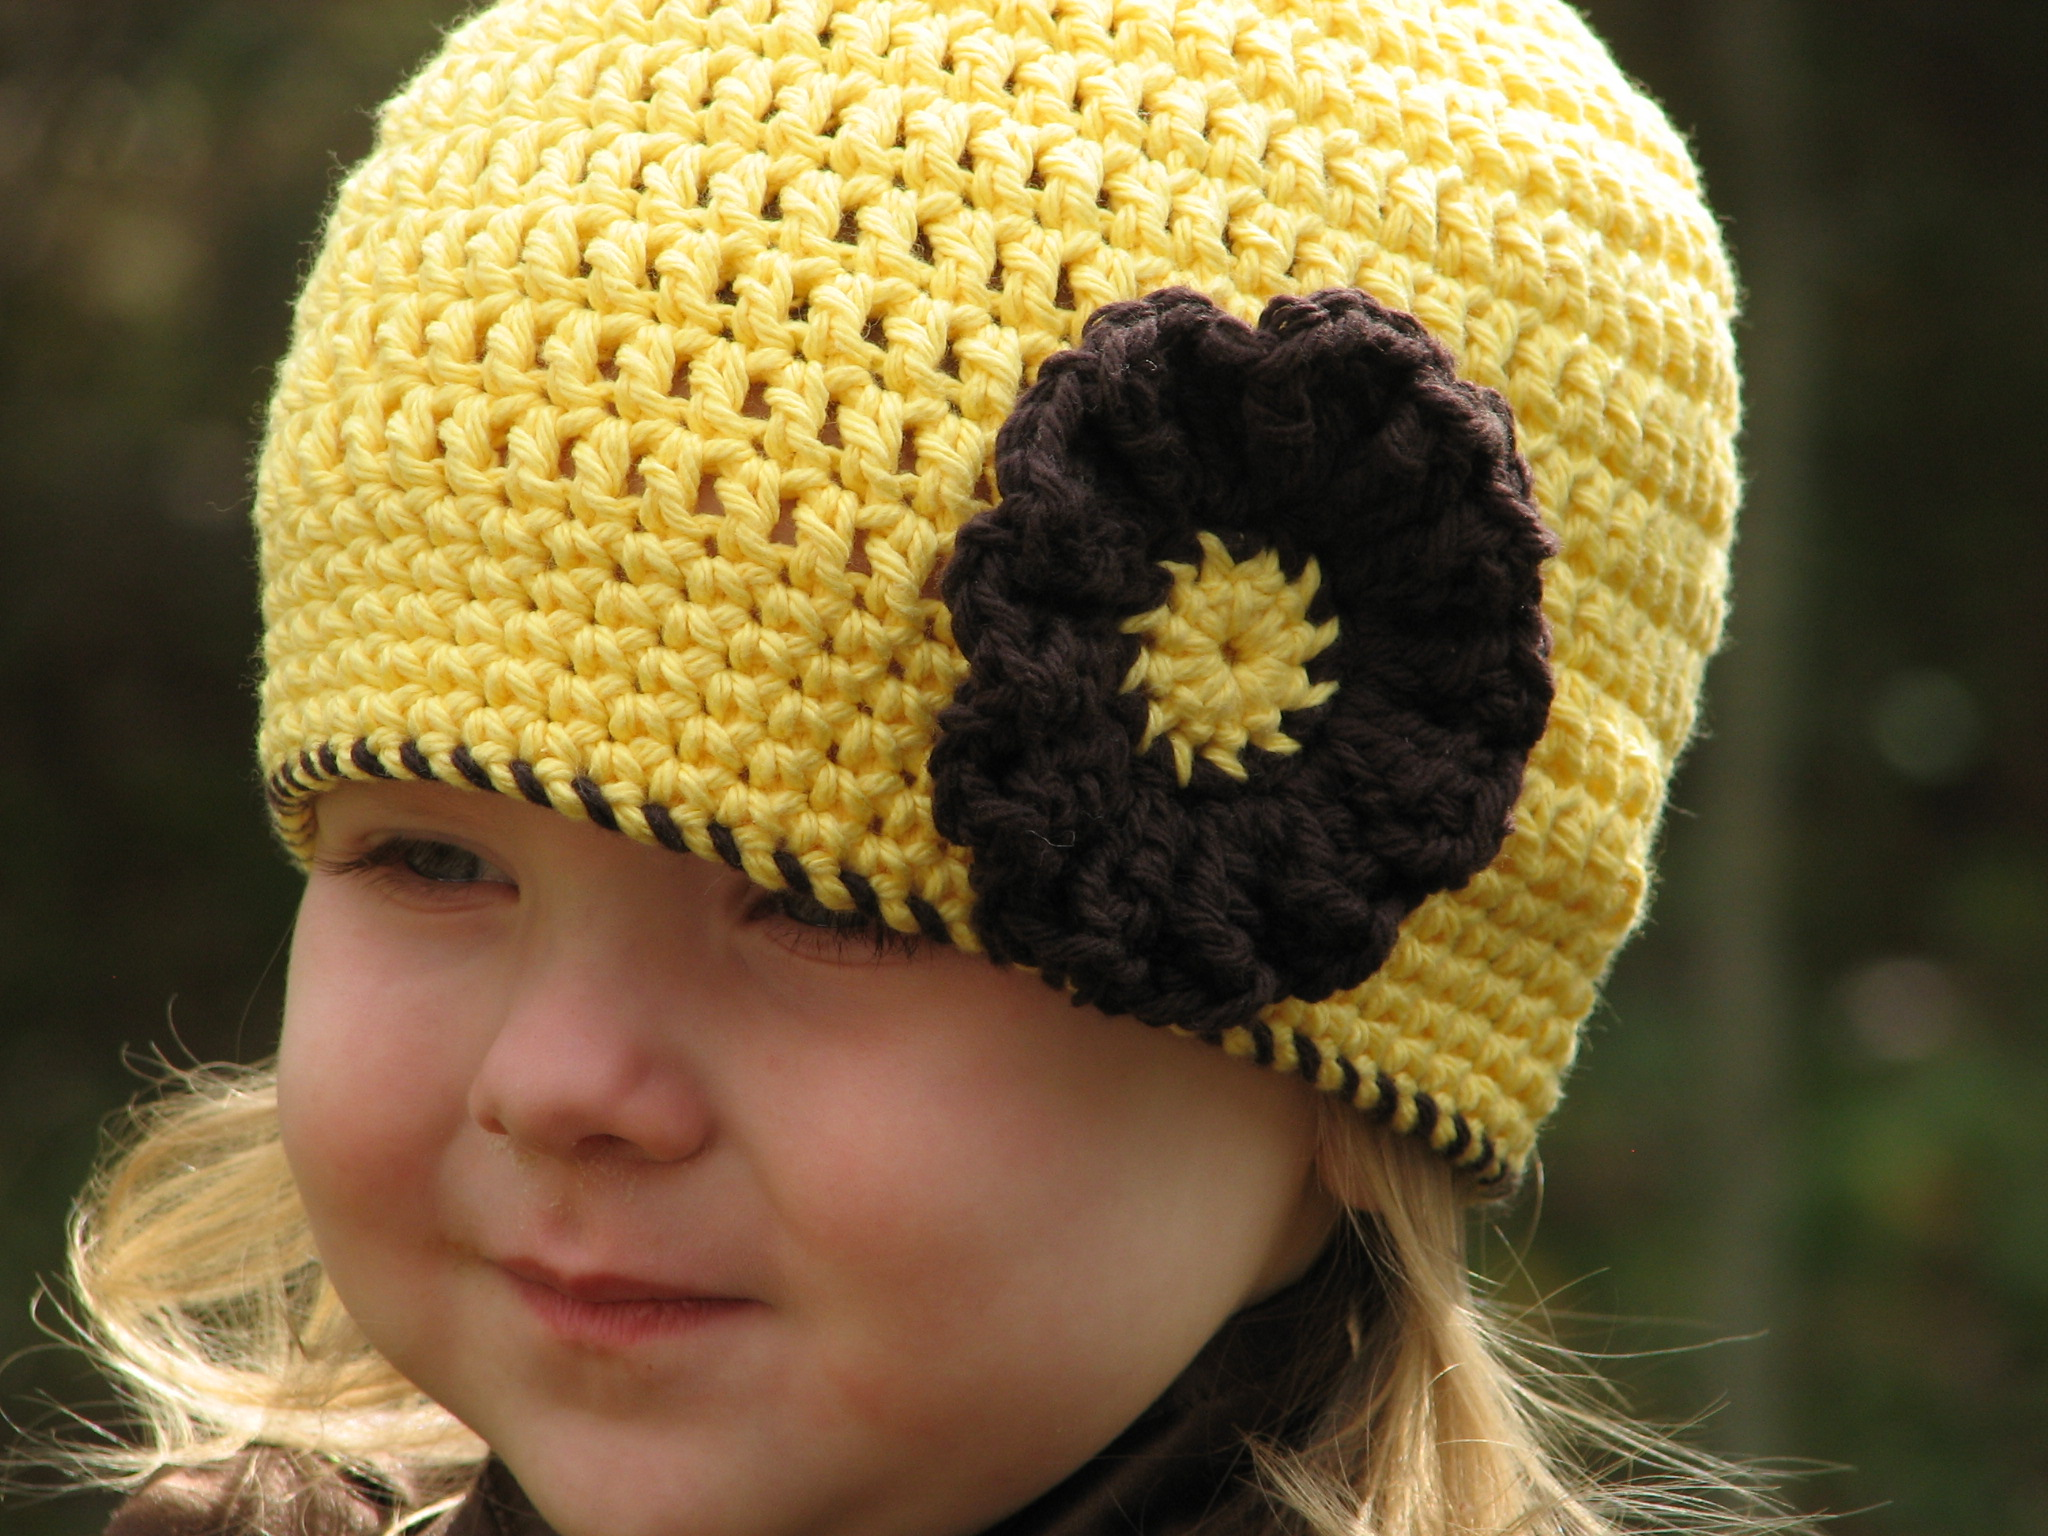 Beginner Crochet Patterns Beanie : Sunshine Beanie Crochet Pattern Giveaway - Ambassador ...